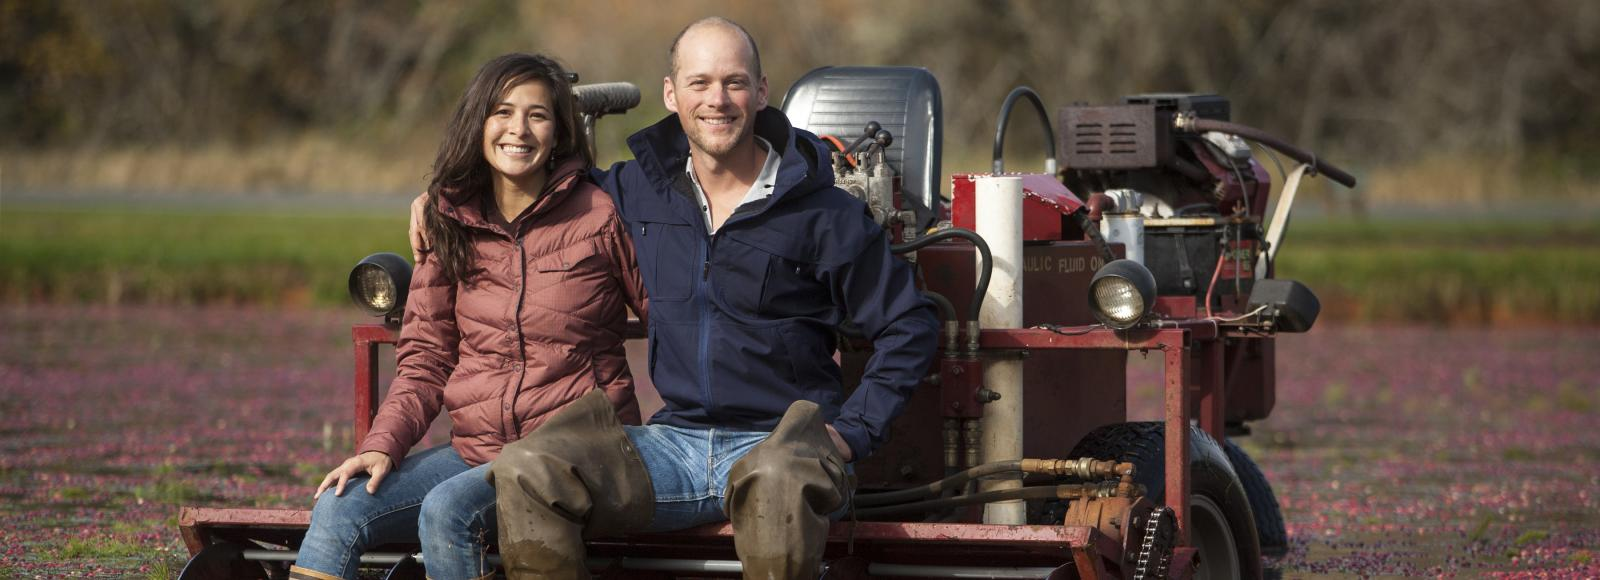 The owners of Starvation Alley, the only certifed organic cranberry farm in Washington, sit on machinery in their bog full of ripe cranberries.